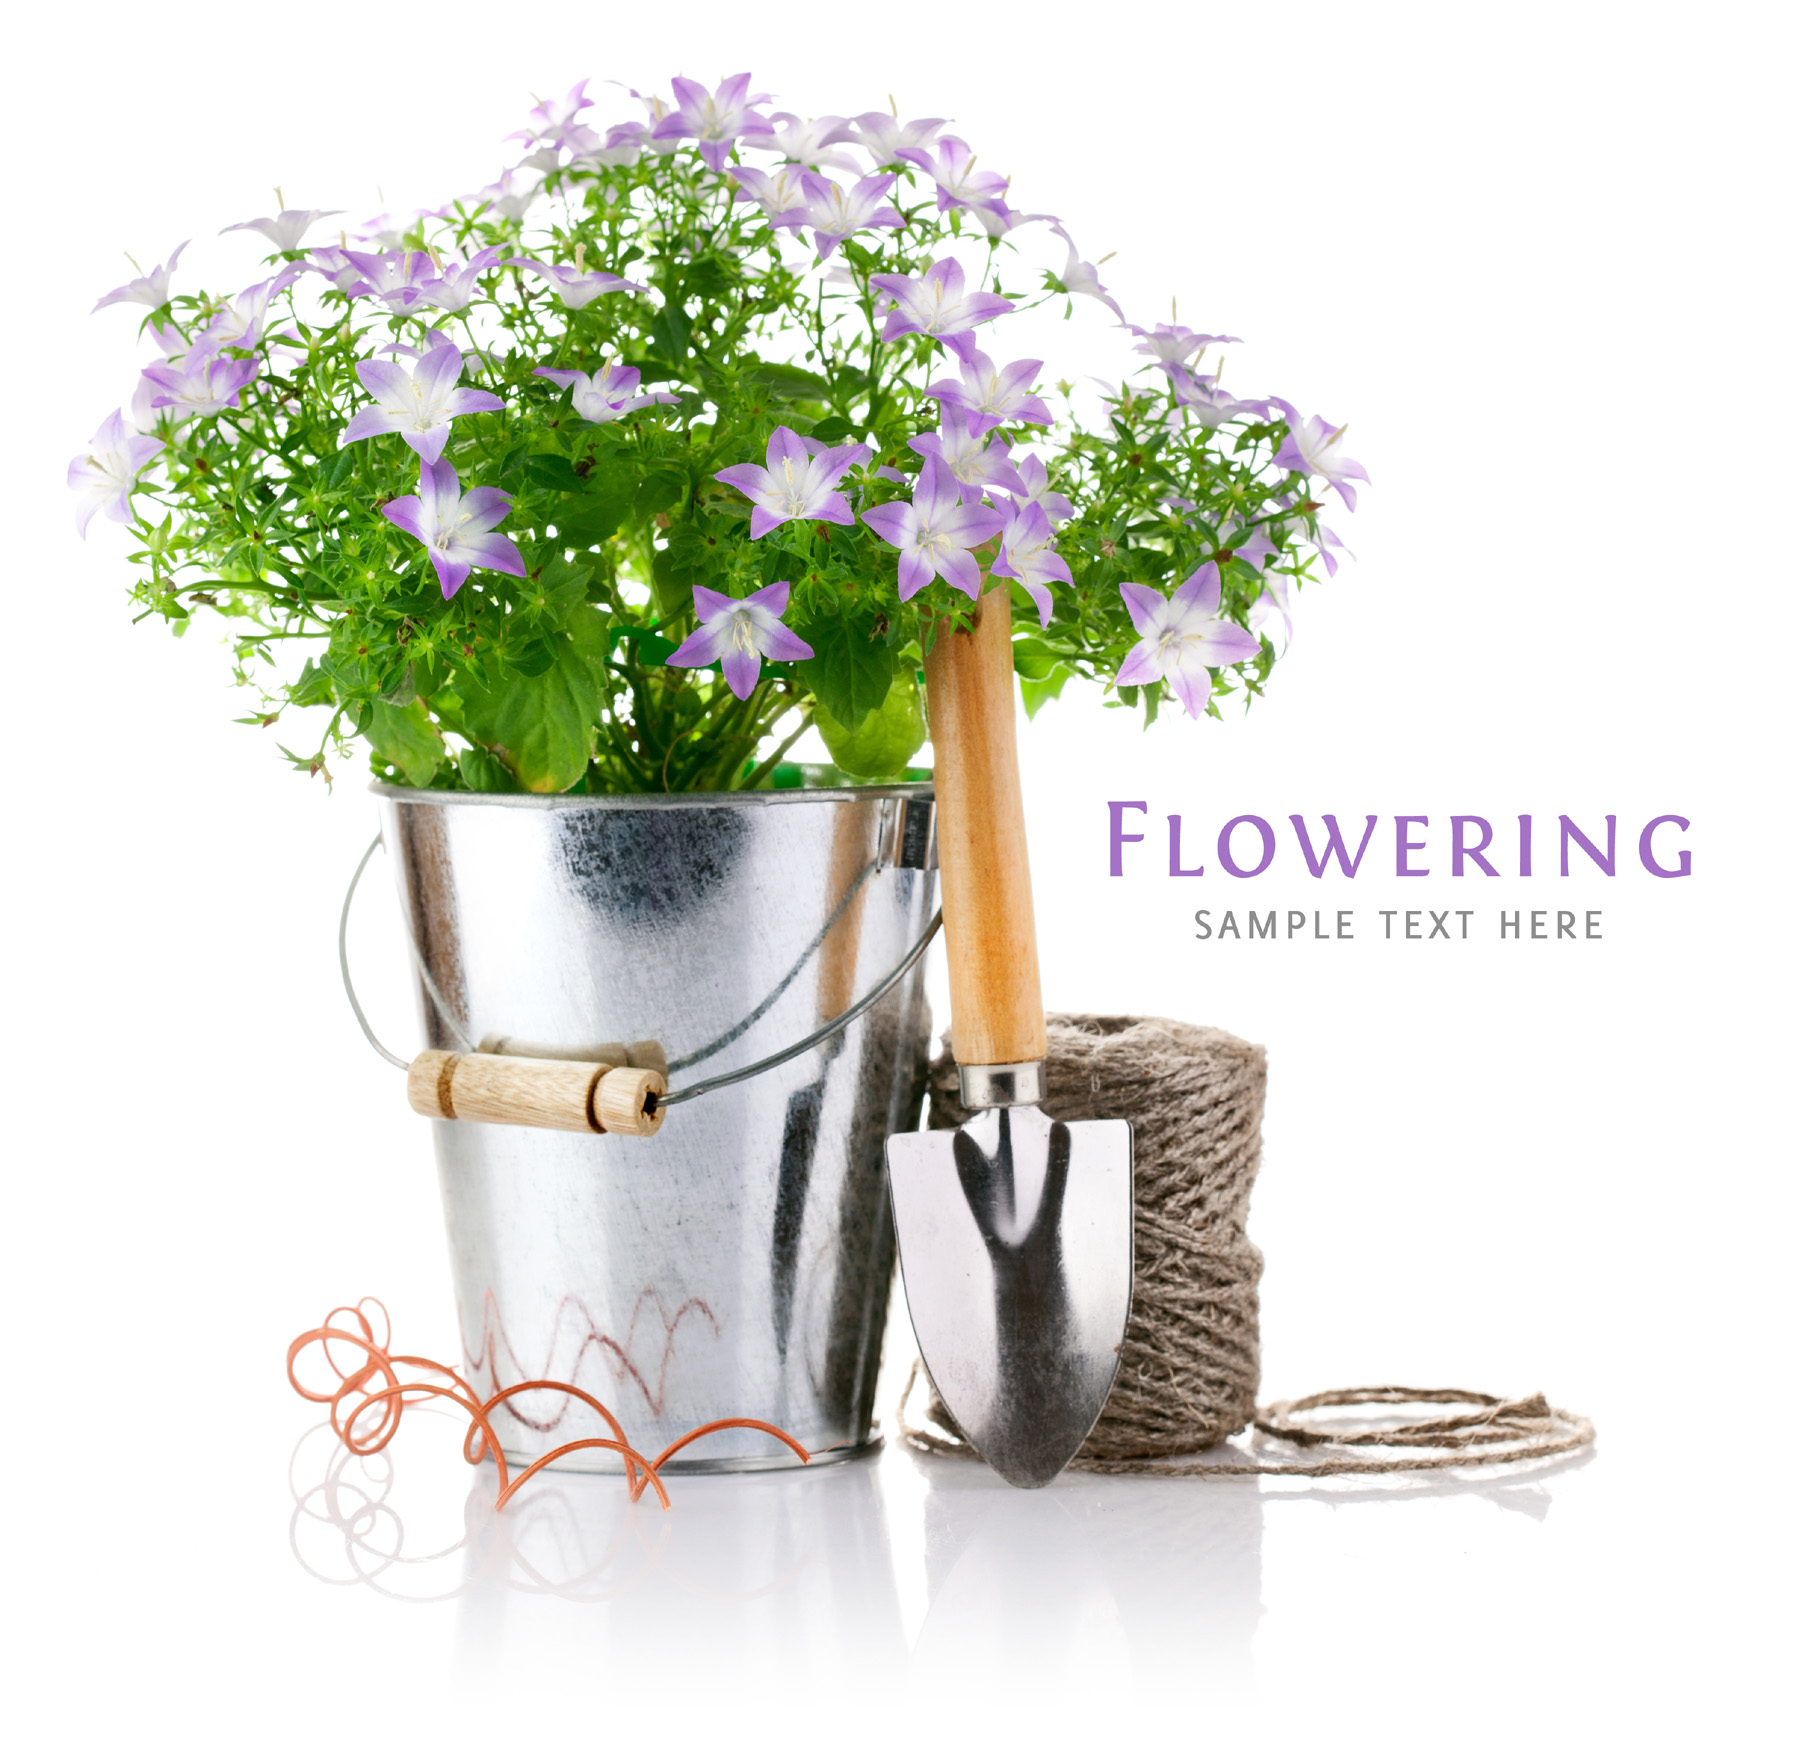 Plants and gardening tools 52018